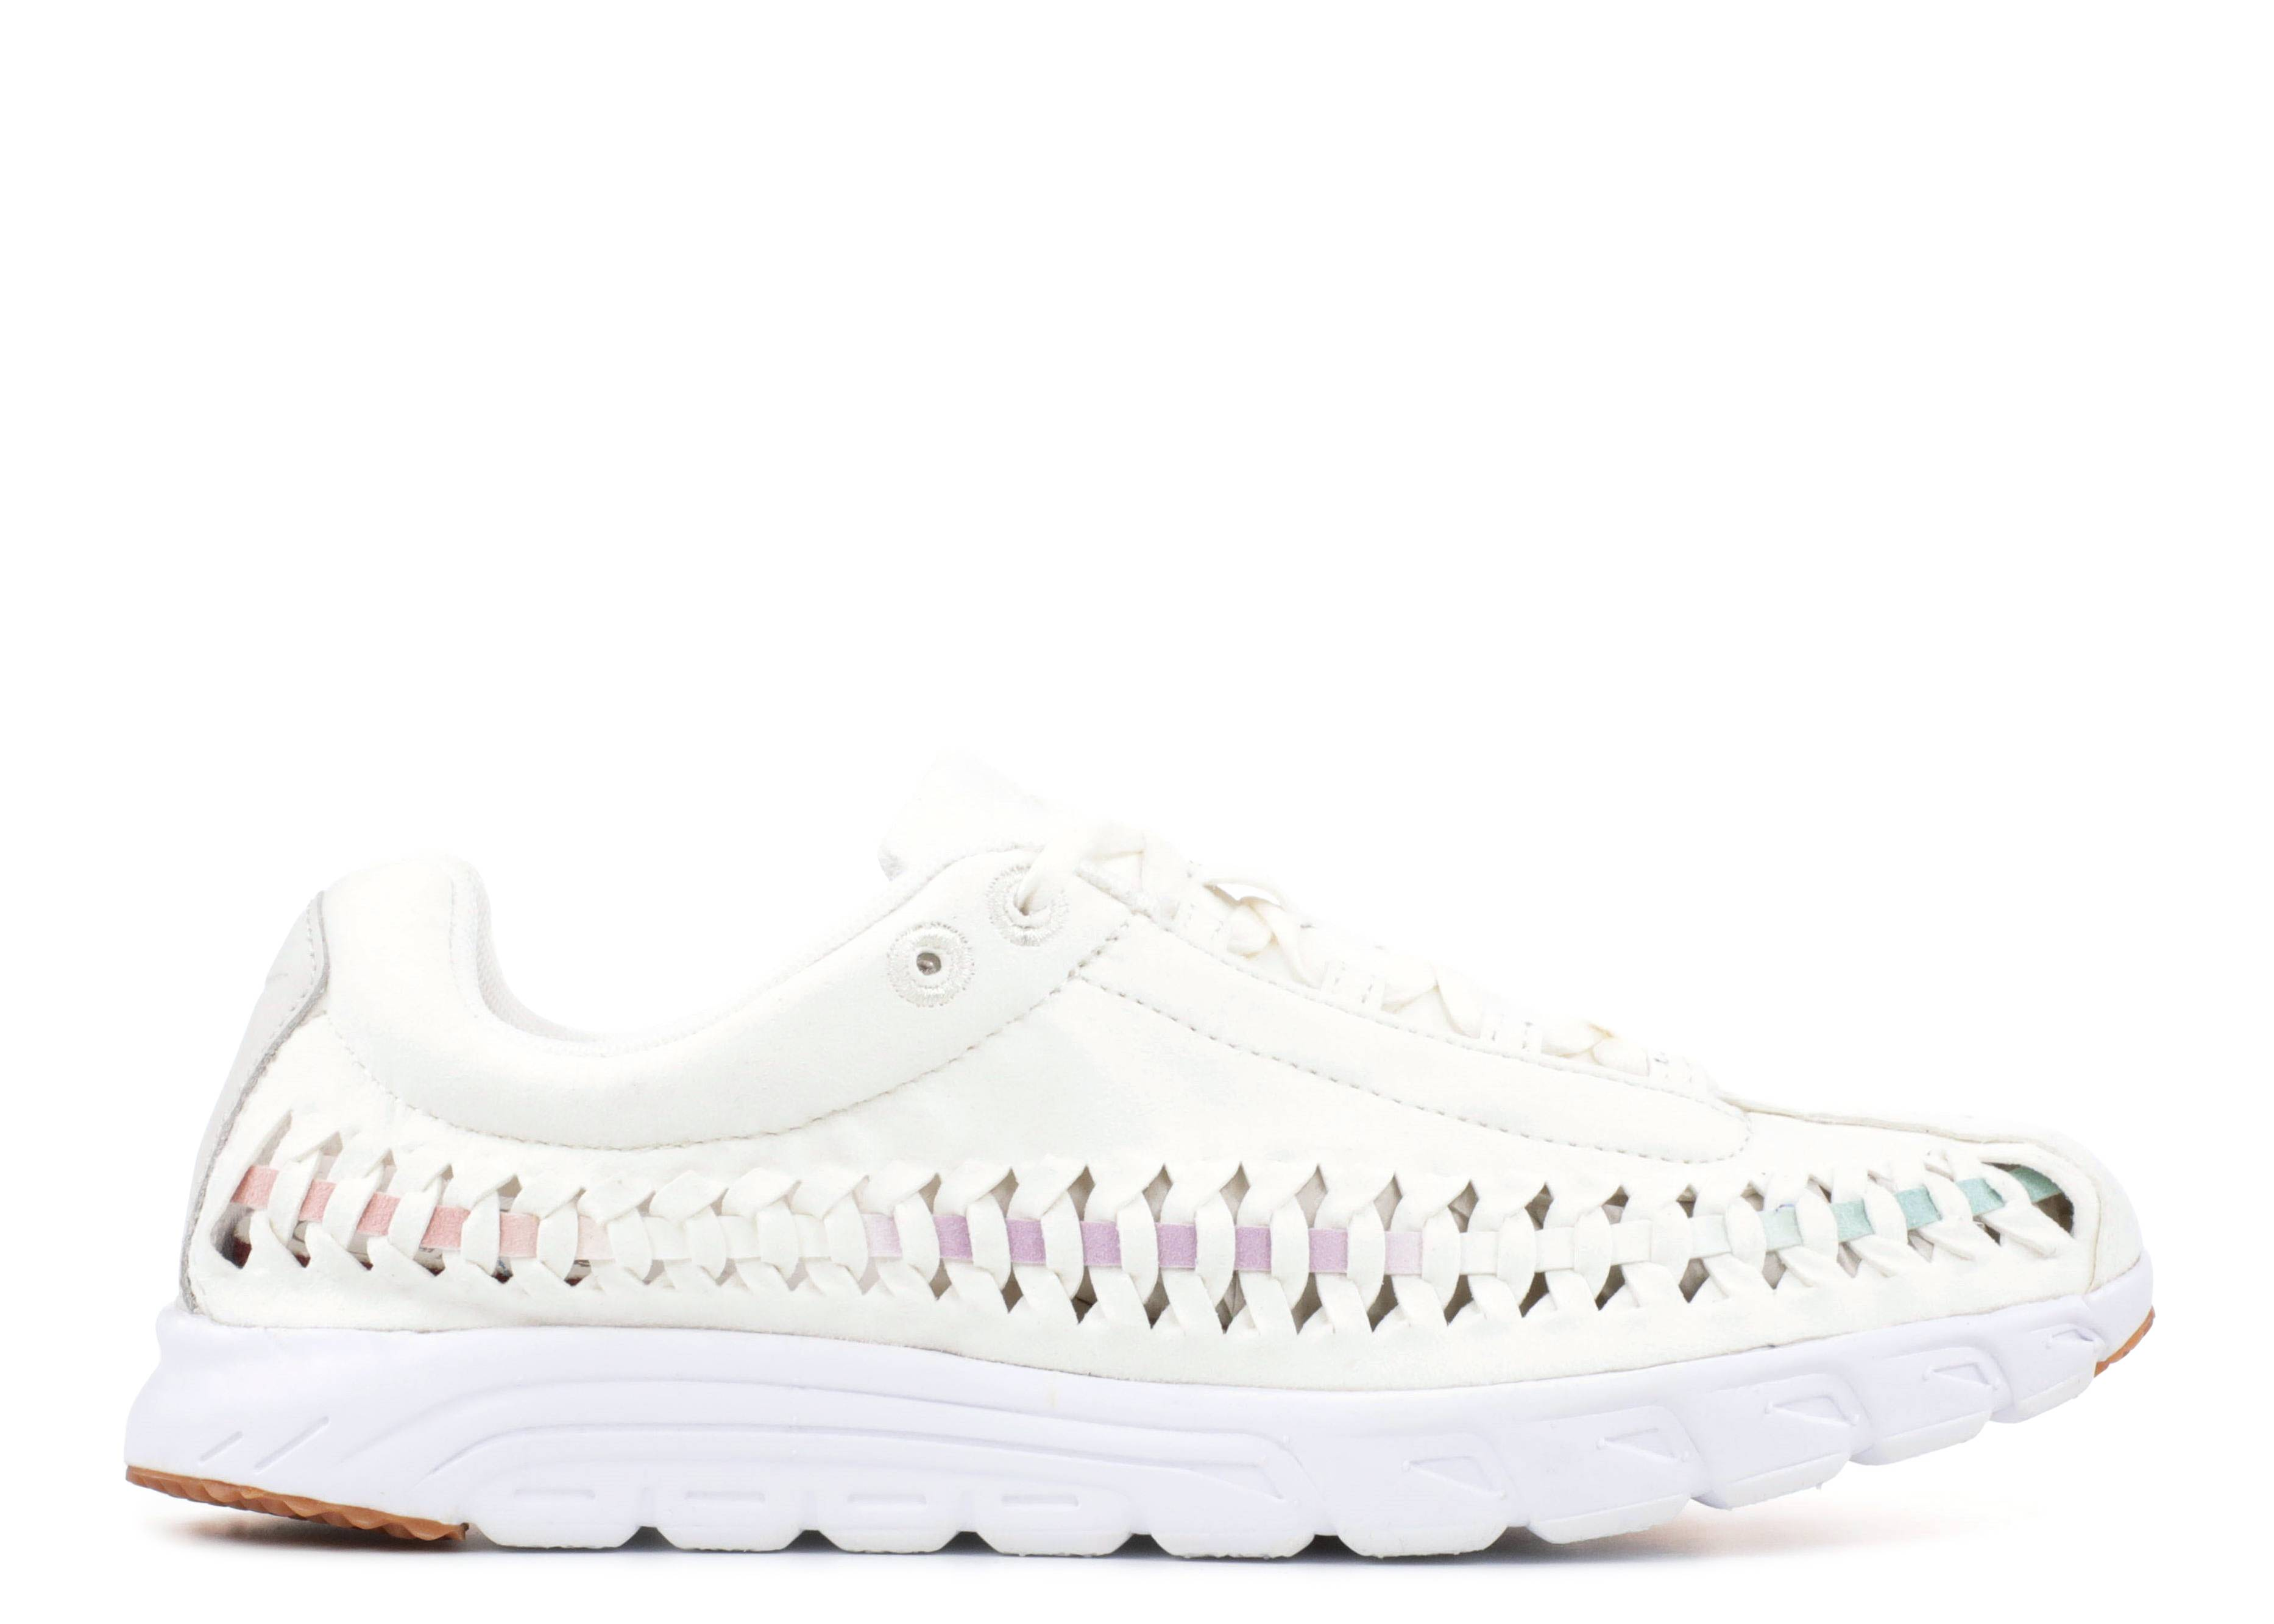 Wmns Mayfly Woven - Nike - 833802 101 - sail sail-red stardust ... ed2268dde